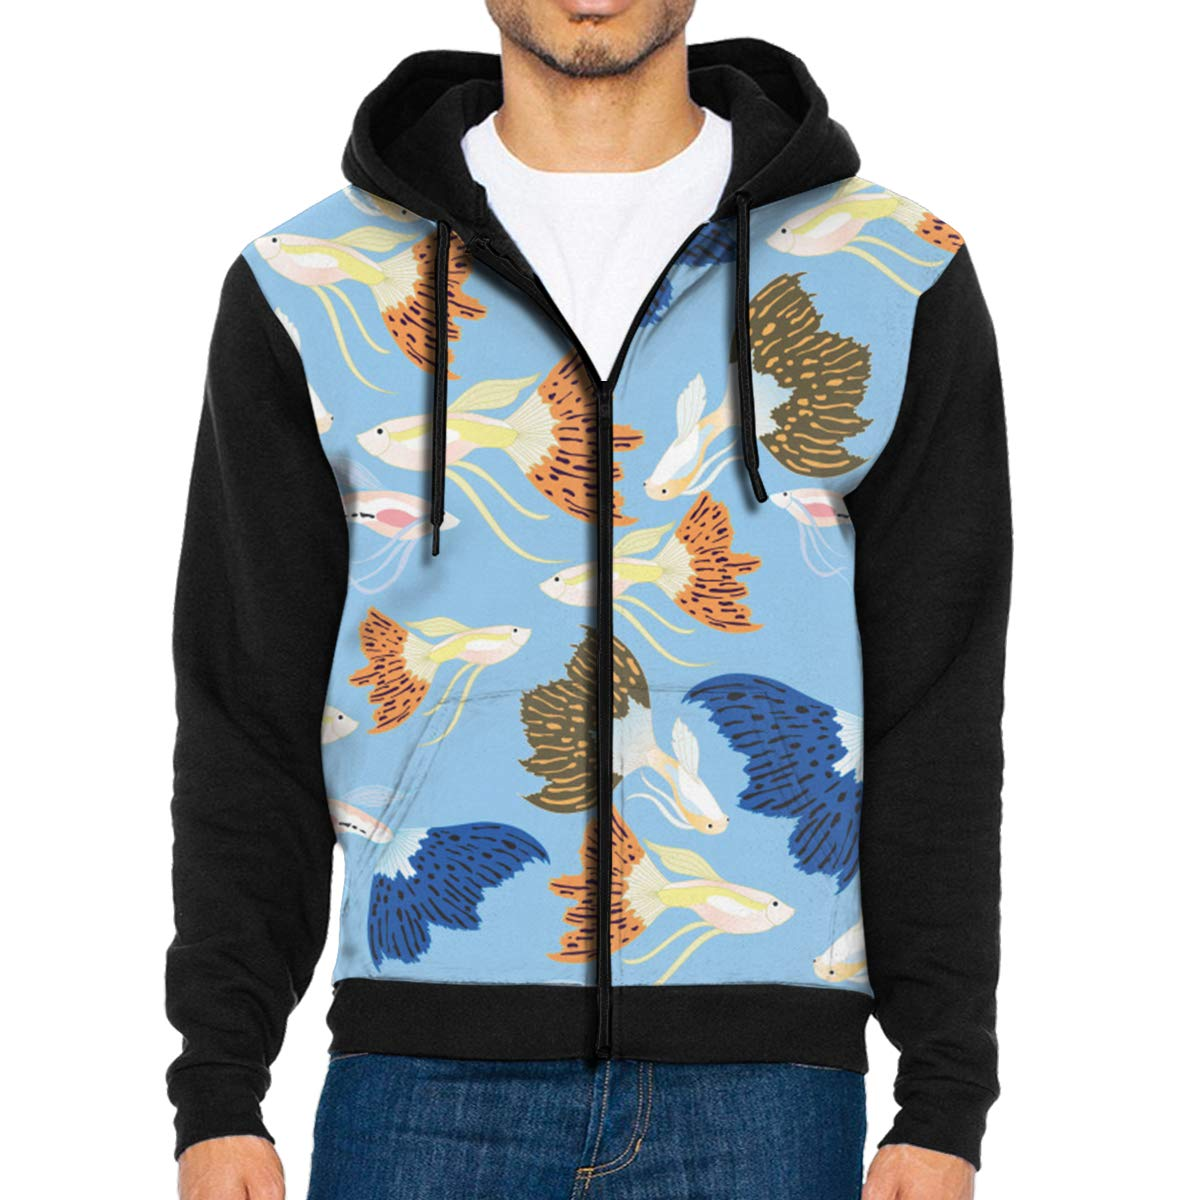 MHBGMYES Guppy Fish Pattern Lightweight Mans Jacket with Hood Long Sleeved Zippered Outwear